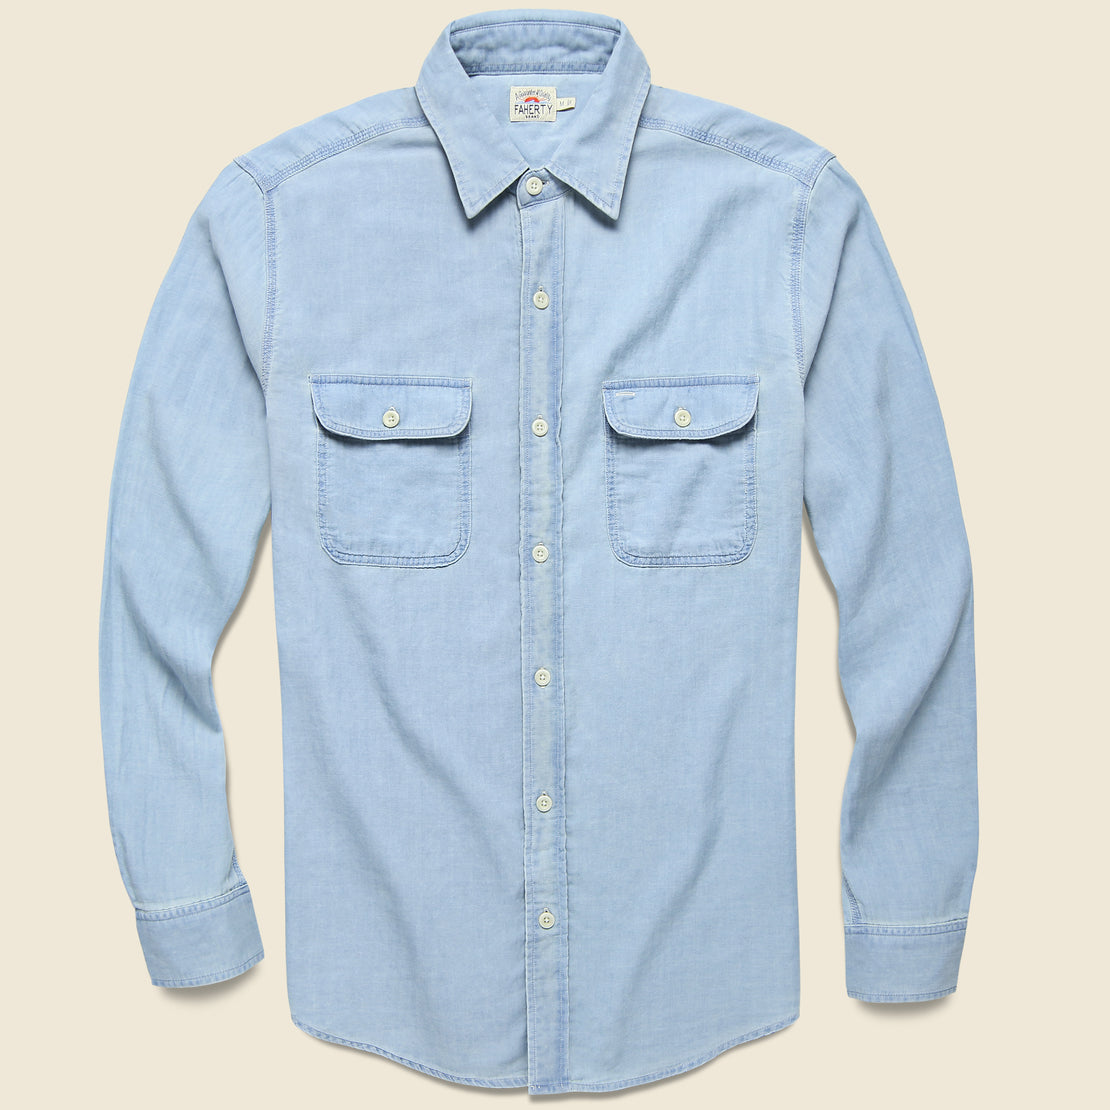 Faherty Penny Workshirt - Indigo Chambray